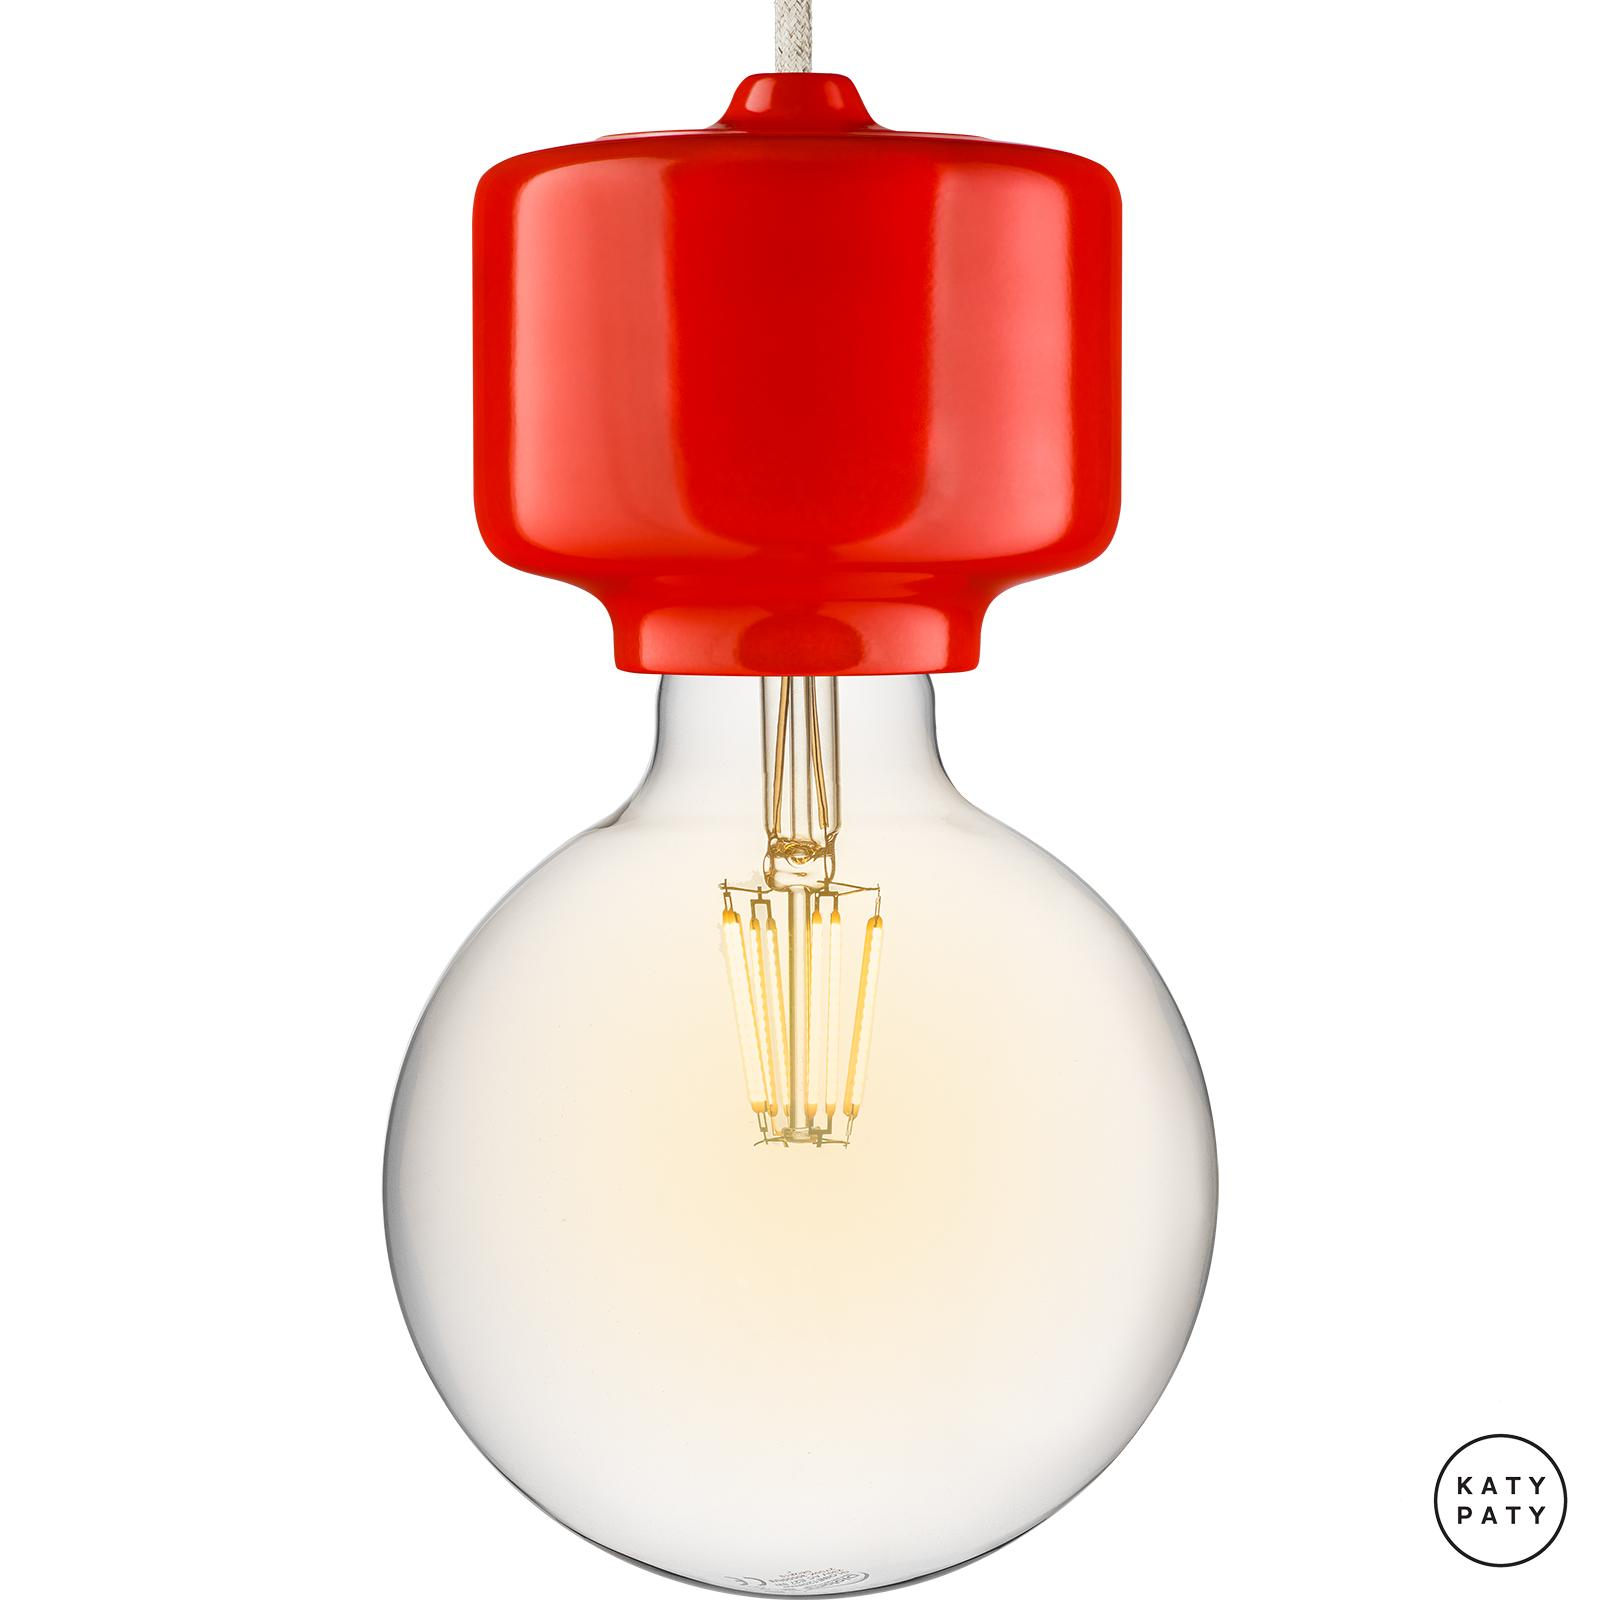 Porcelain lamps - ROTO ()  - NITOR ROSEA | Katy Paty